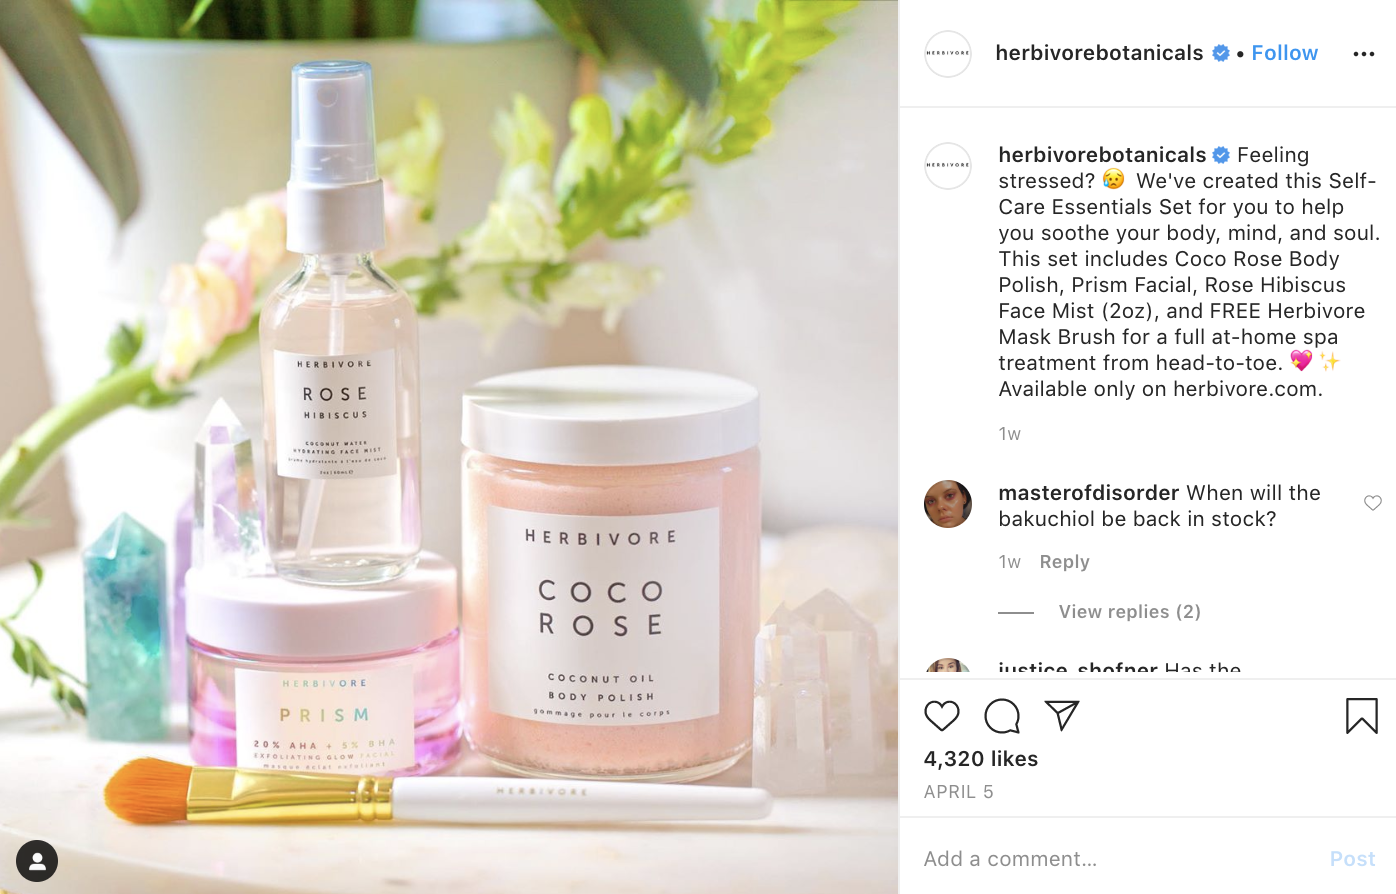 A follow up post featuring the Self-Care Essentials Set.